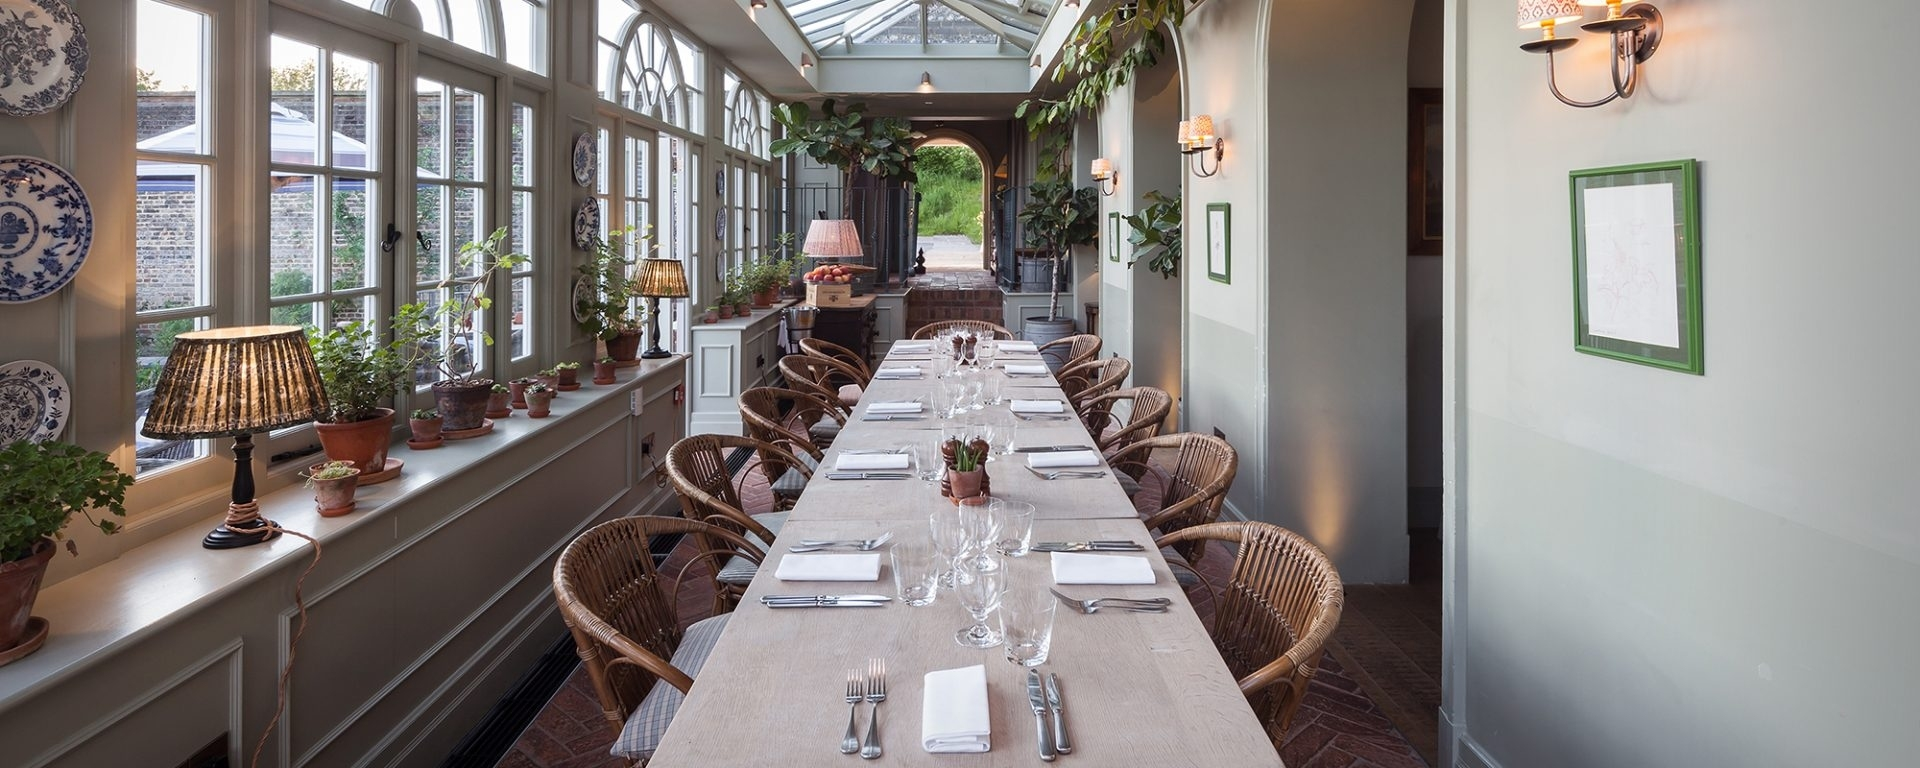 Luxury Fine Dining Restaurants In Surrey | Beaverbrook pertaining to Garden House Hotel And Restaurant Leatherhead